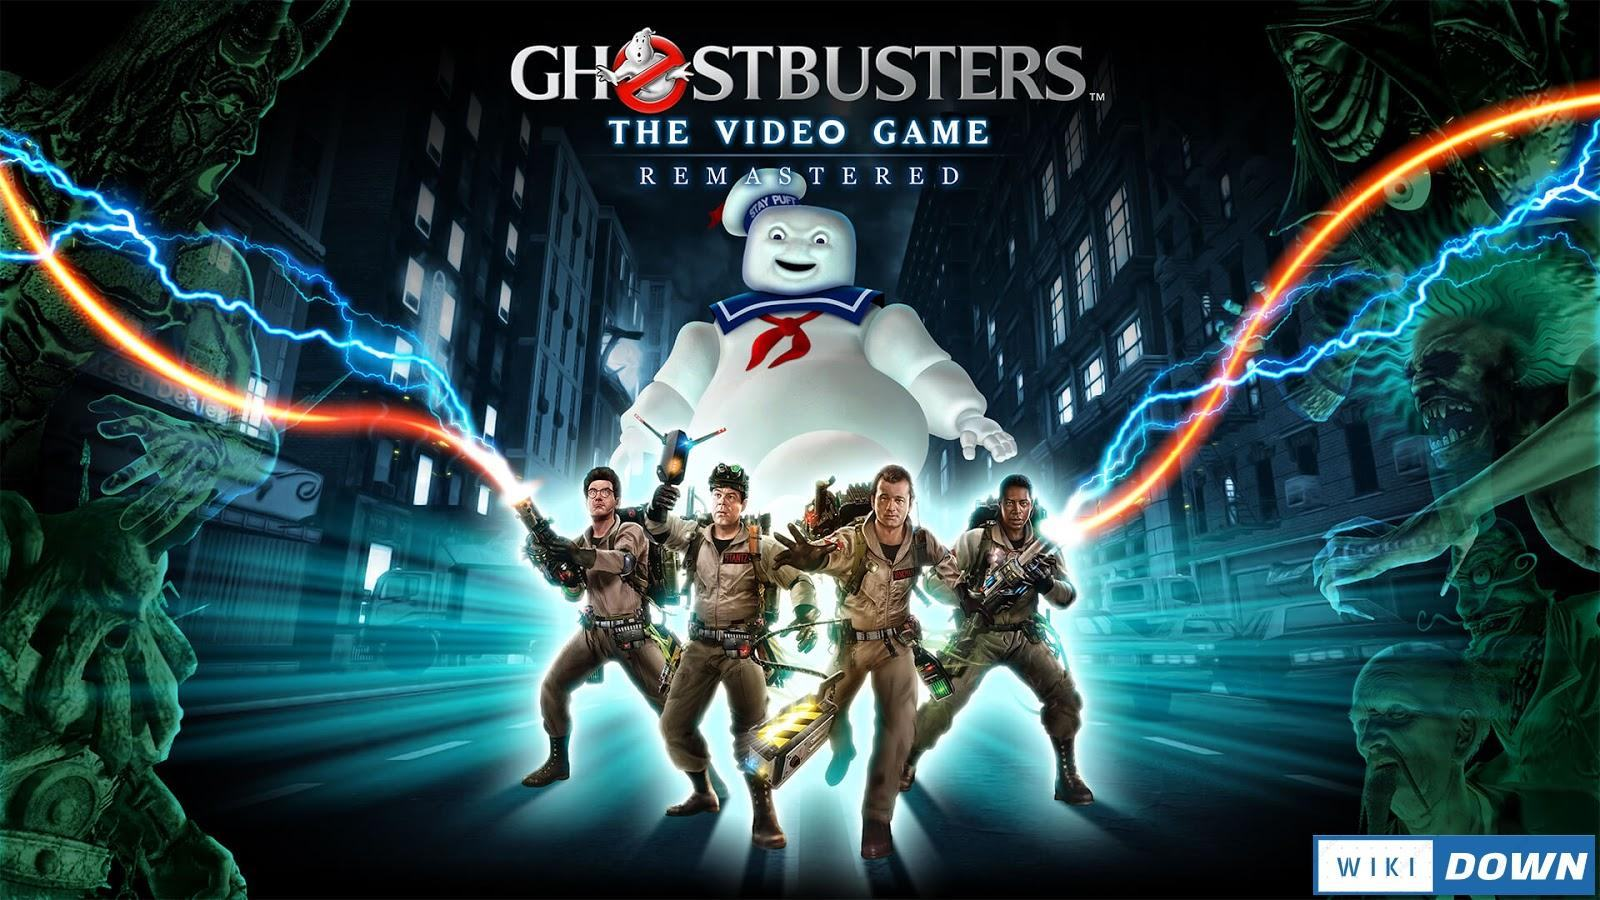 Download Ghostbusters The Video Game Remastered Mới Nhất